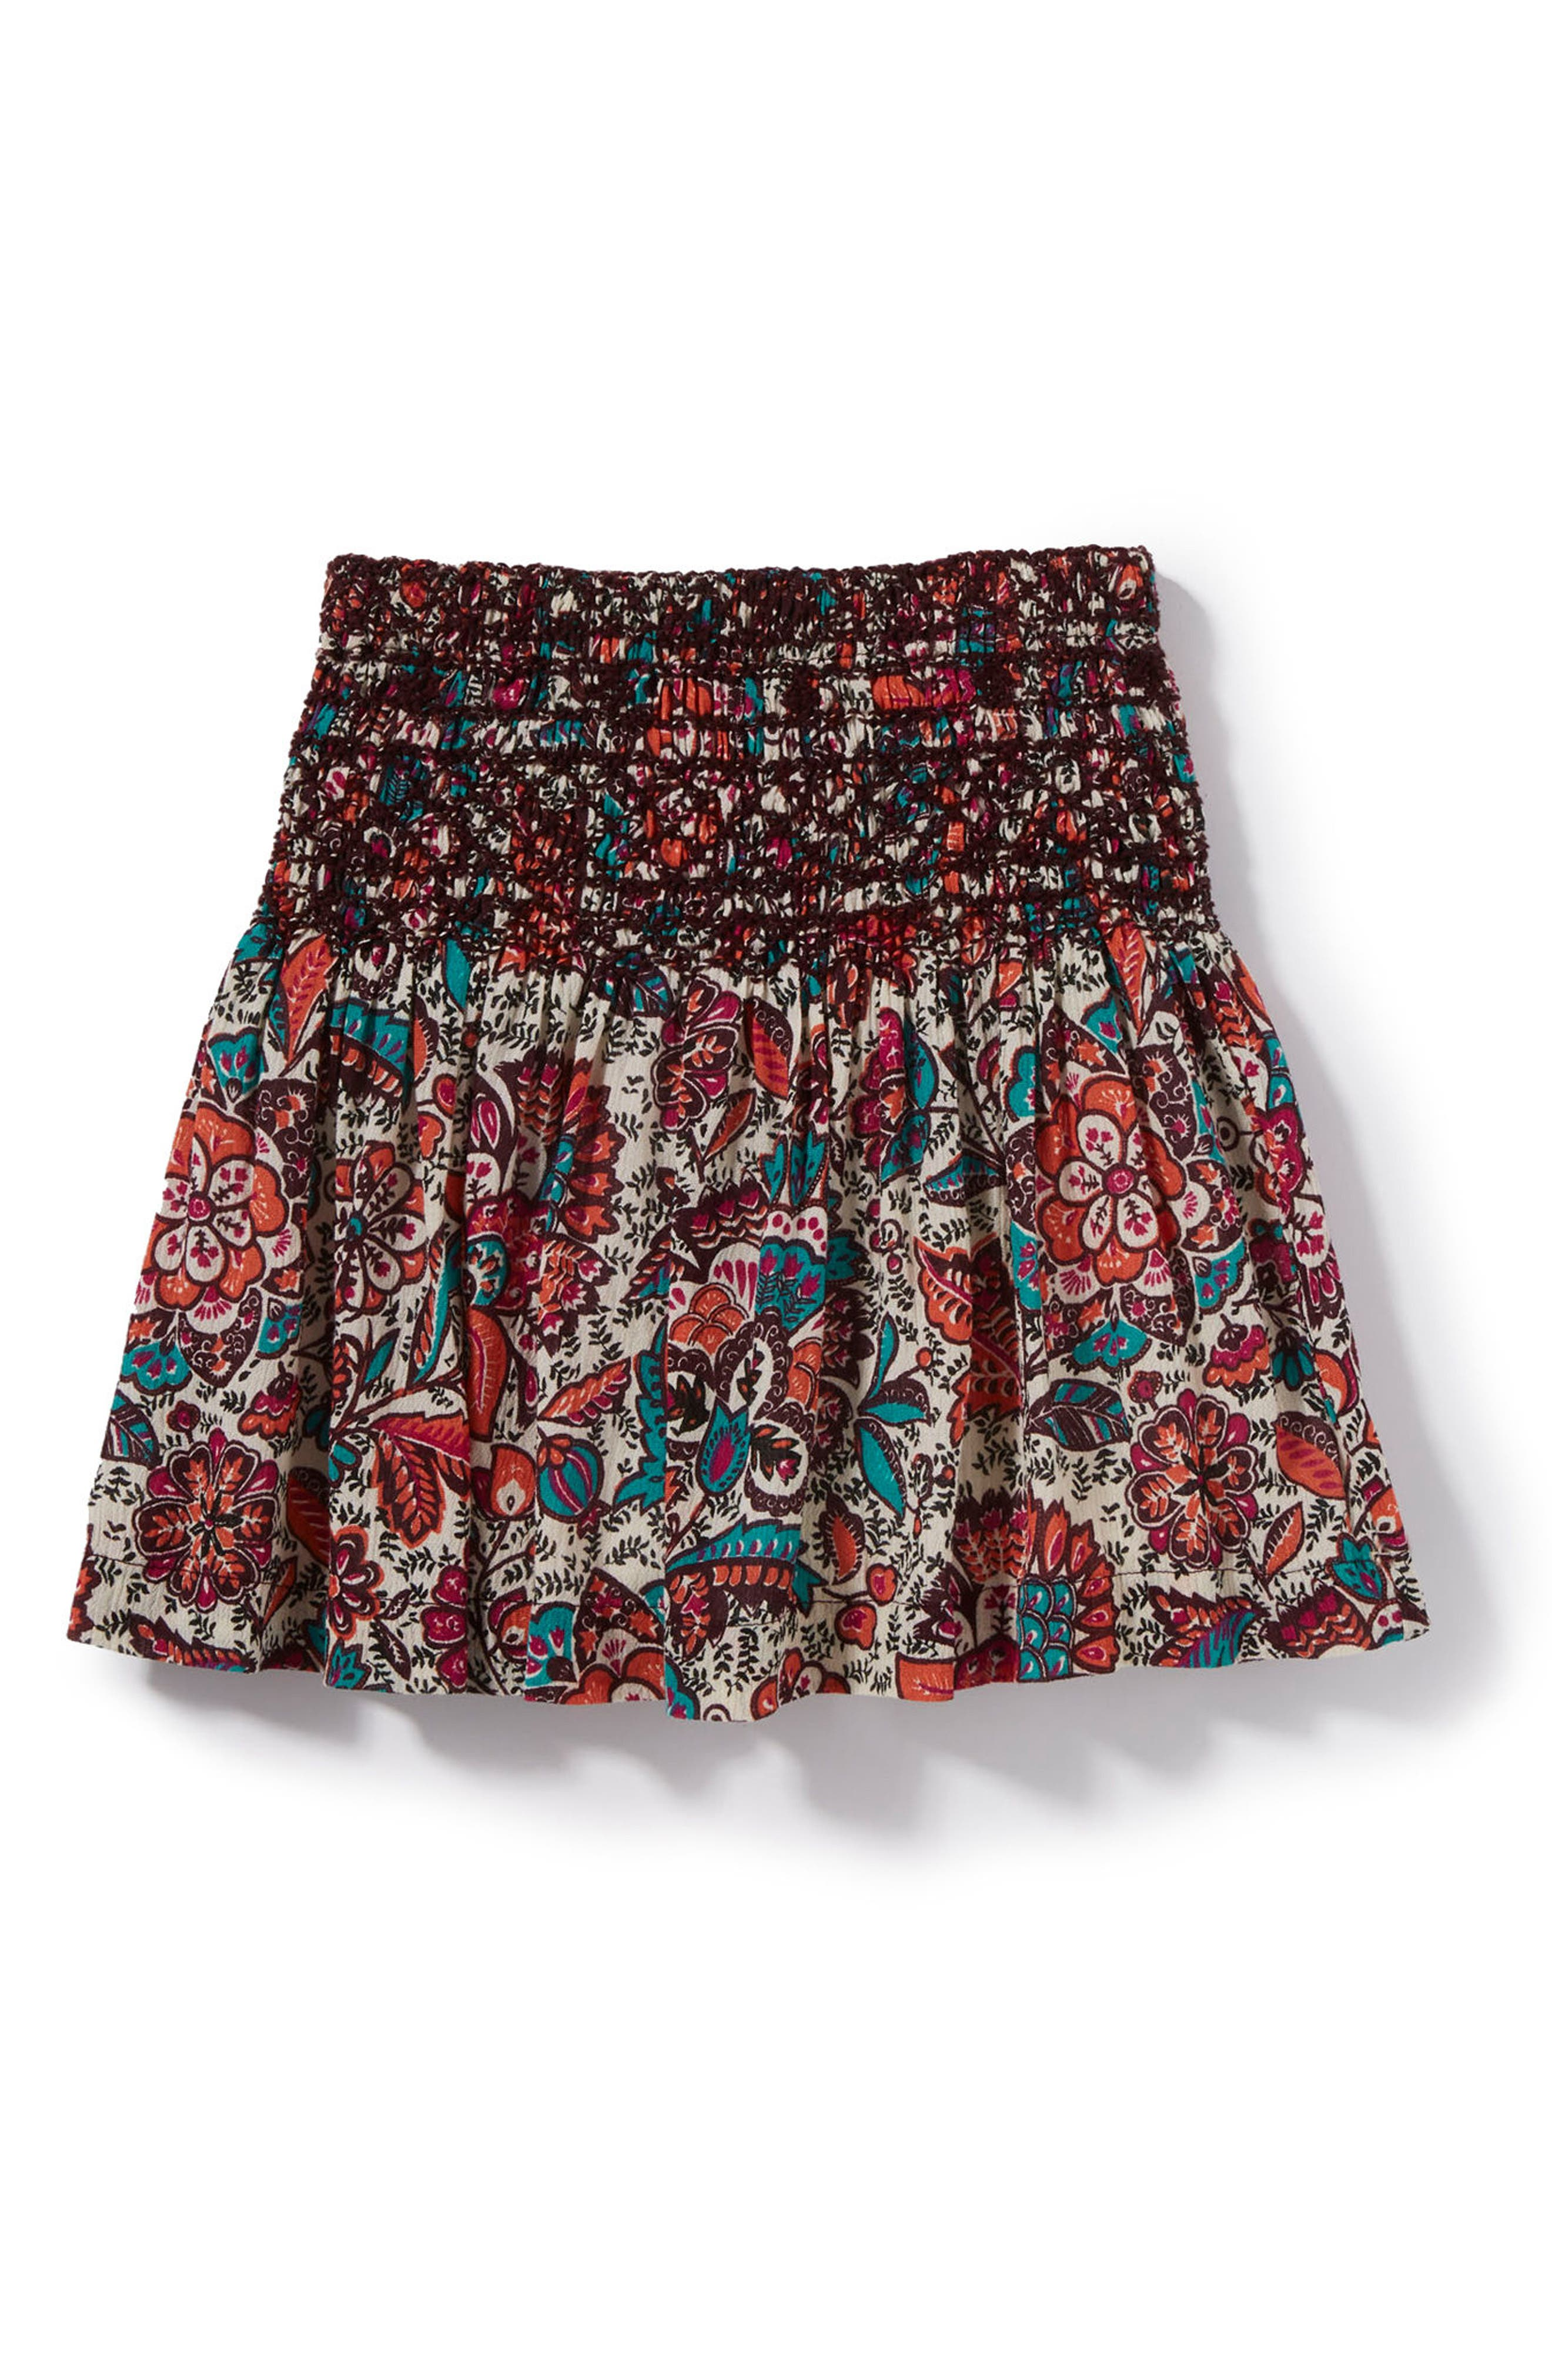 Main Image - Peek Pixie Print Skirt (Toddler Girls, Little Girls & Big Girls)